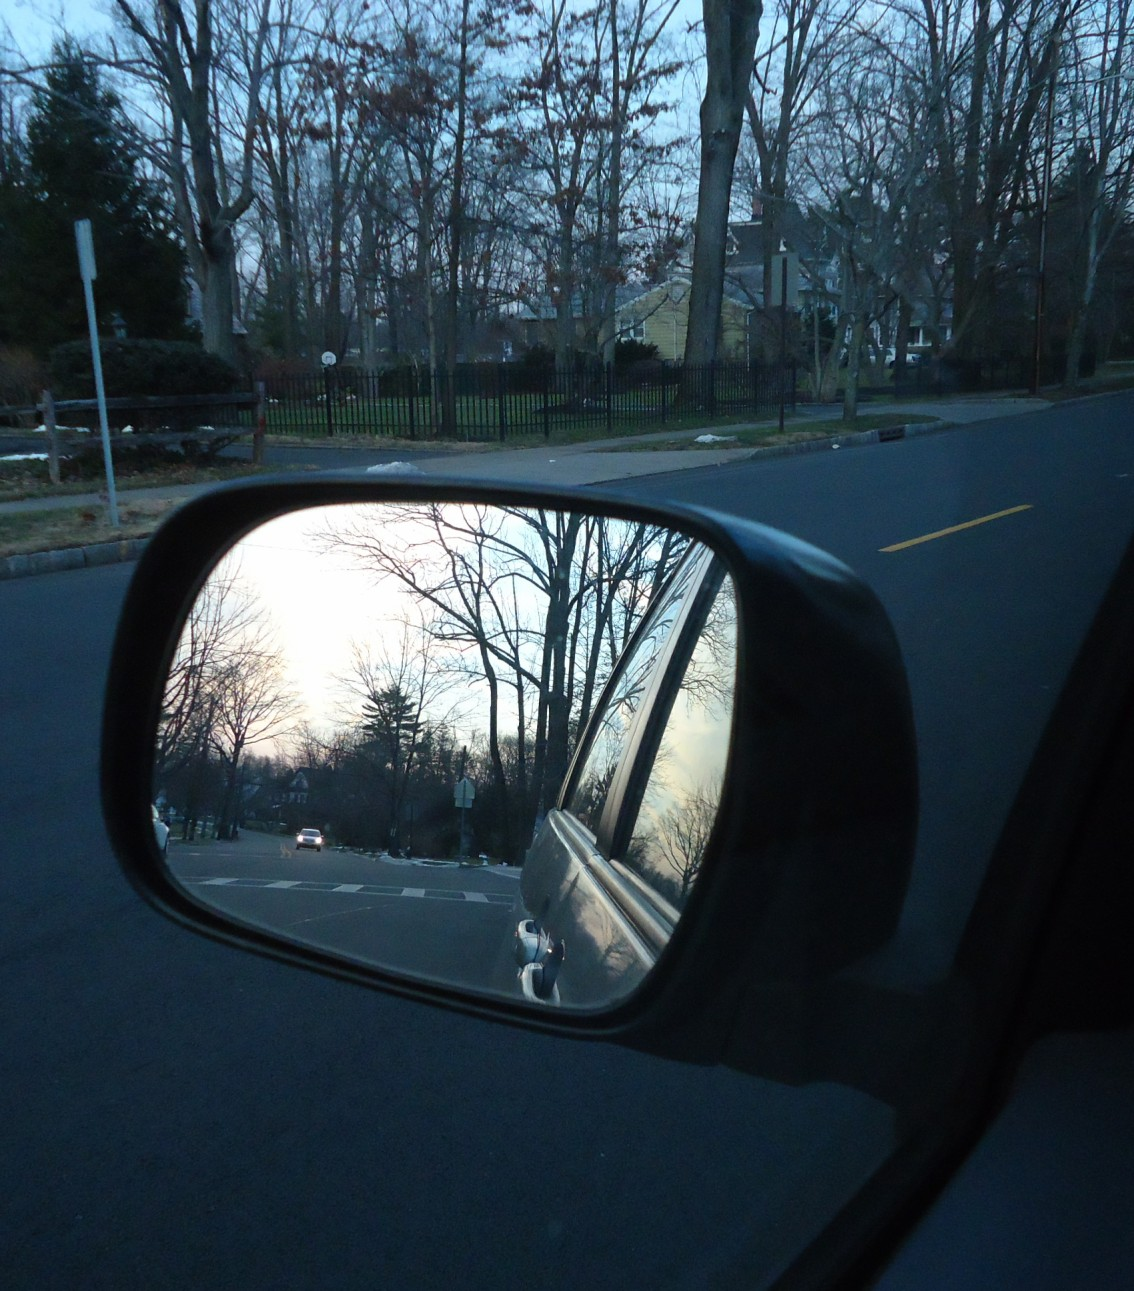 File Scene In The Rear View Mirror Of A Car Jpg